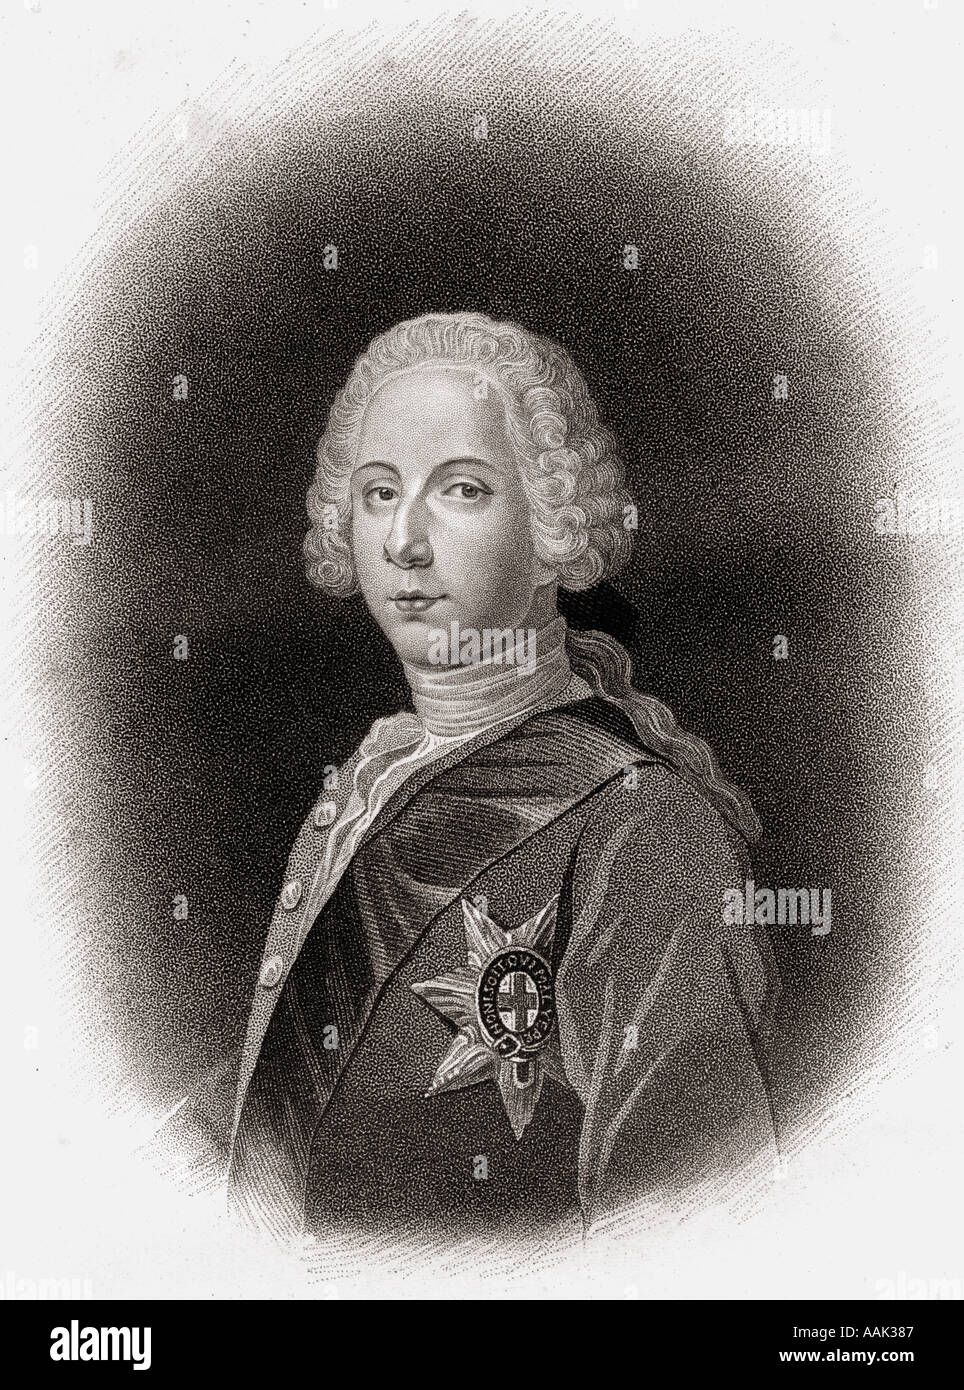 Charles Edward Louis John Casimir Sylvester Severino Maria Stuart, aka The Young Pretender, The Young Chevalier' and Bonnie Prince Charlie, 1720-1788. - Stock Image